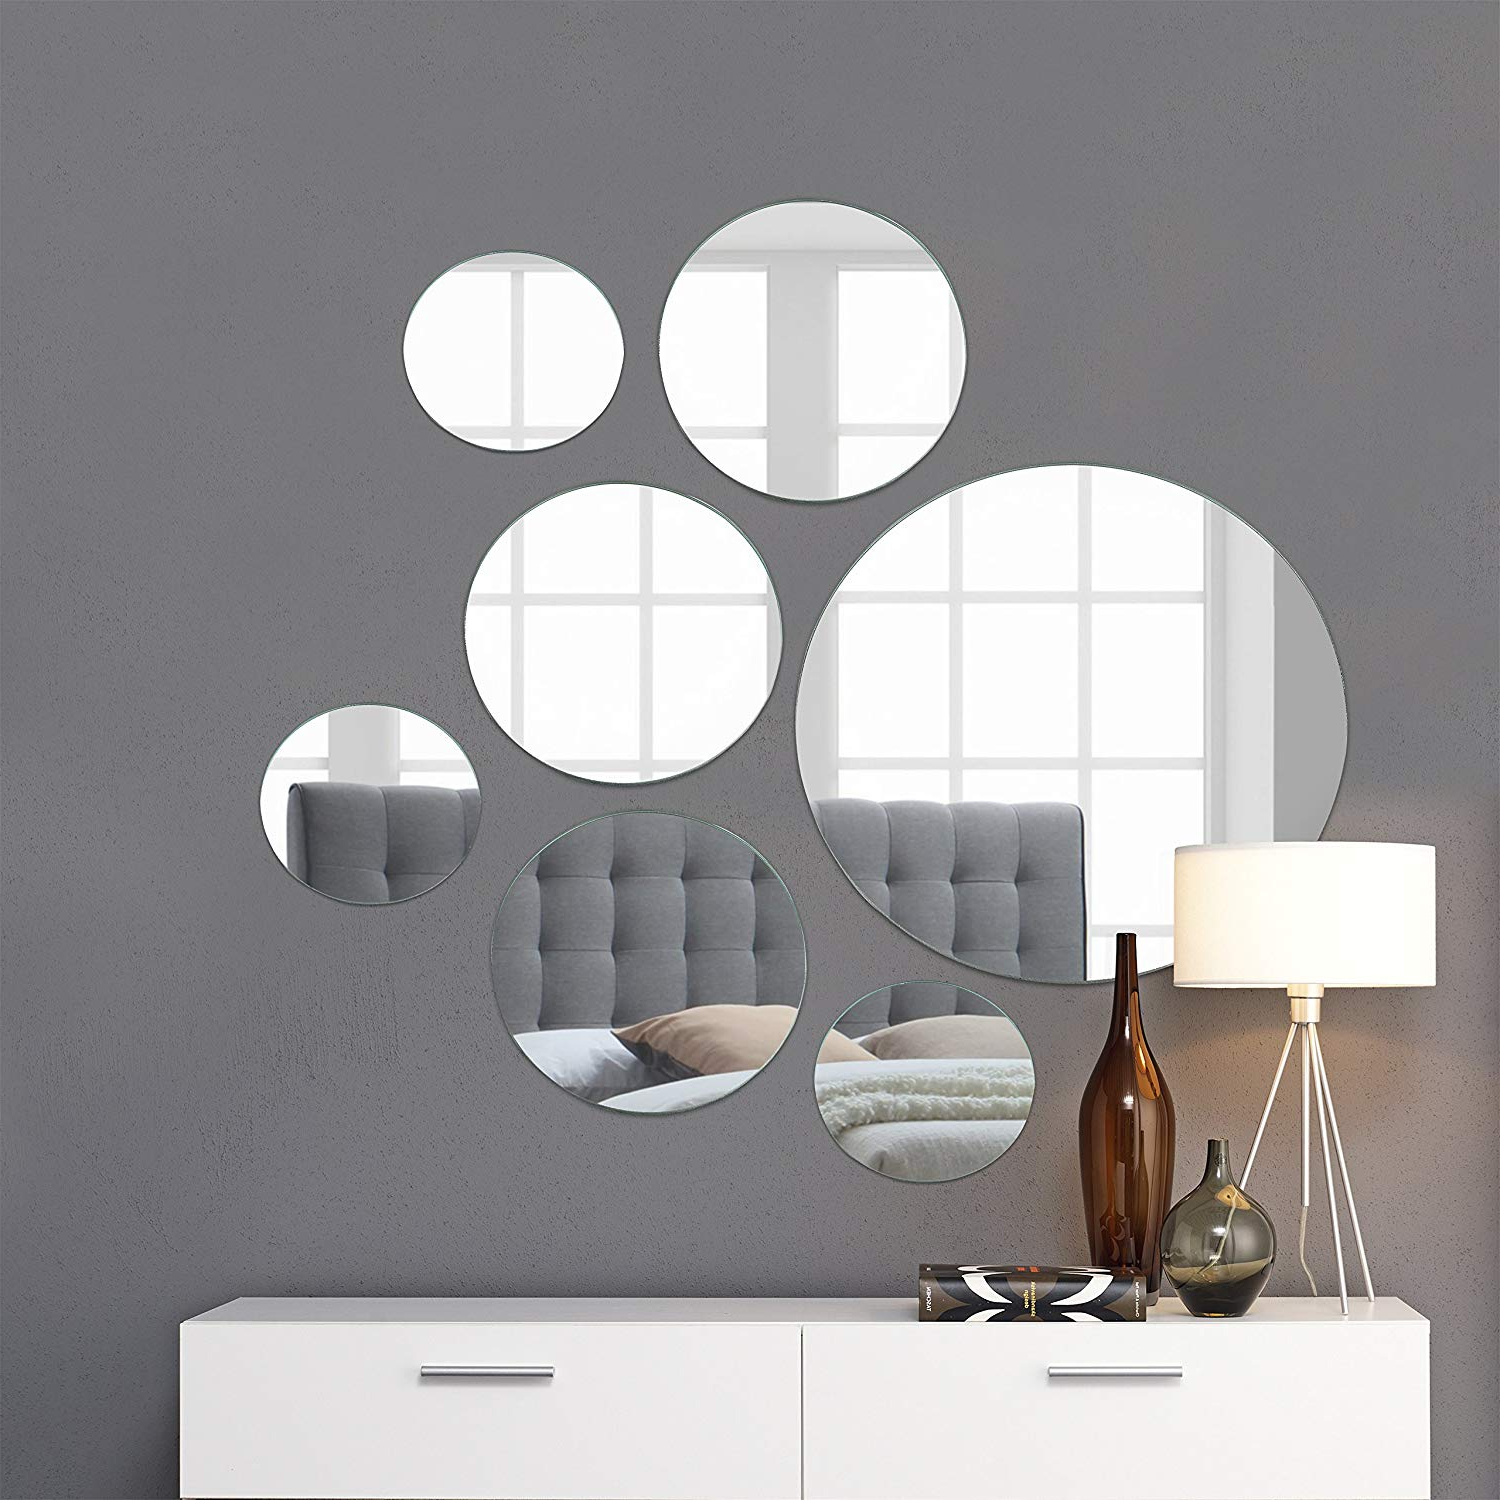 """Decorative Cheap Wall Mirrors In Most Recently Released Light In The Dark Medium Round Mirror Wall Mounted Assorted Sizes (1x10"""", 3x7"""", 3x4"""") – Set Of 7 Round Glass Mirrors Wall Decoration For Living Room, (View 12 of 20)"""